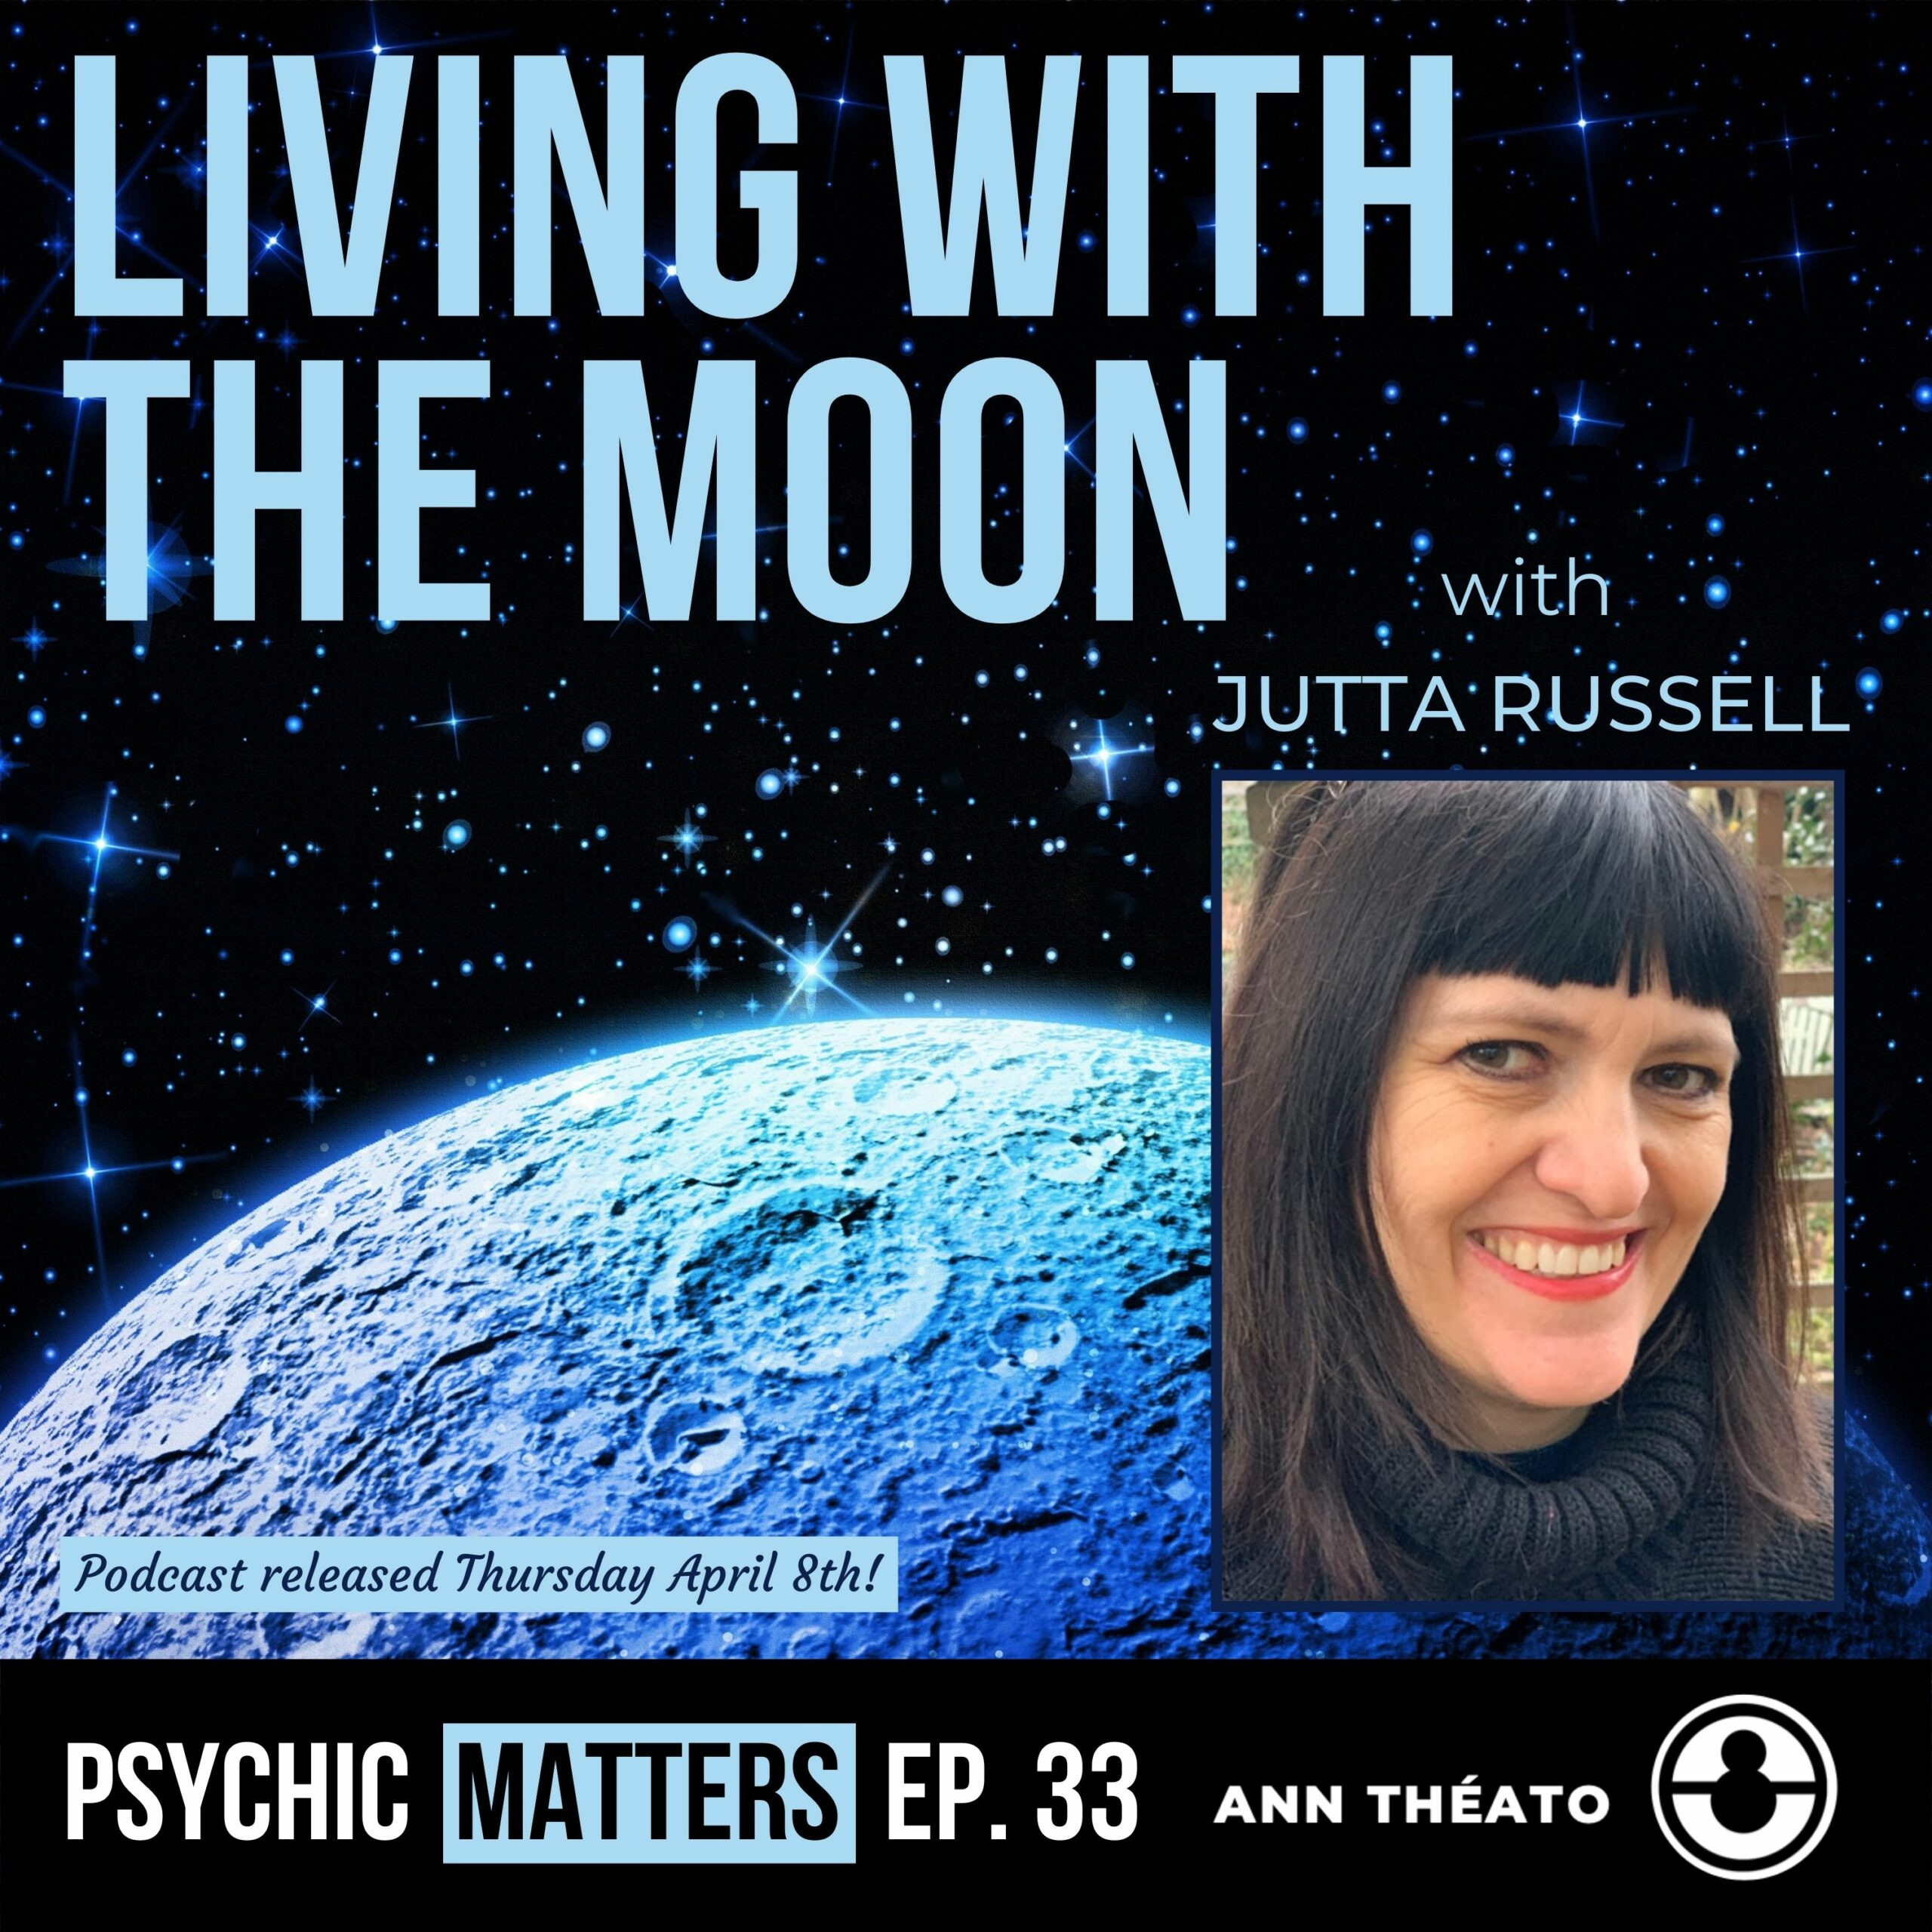 Episode 33 - Living With The Moon